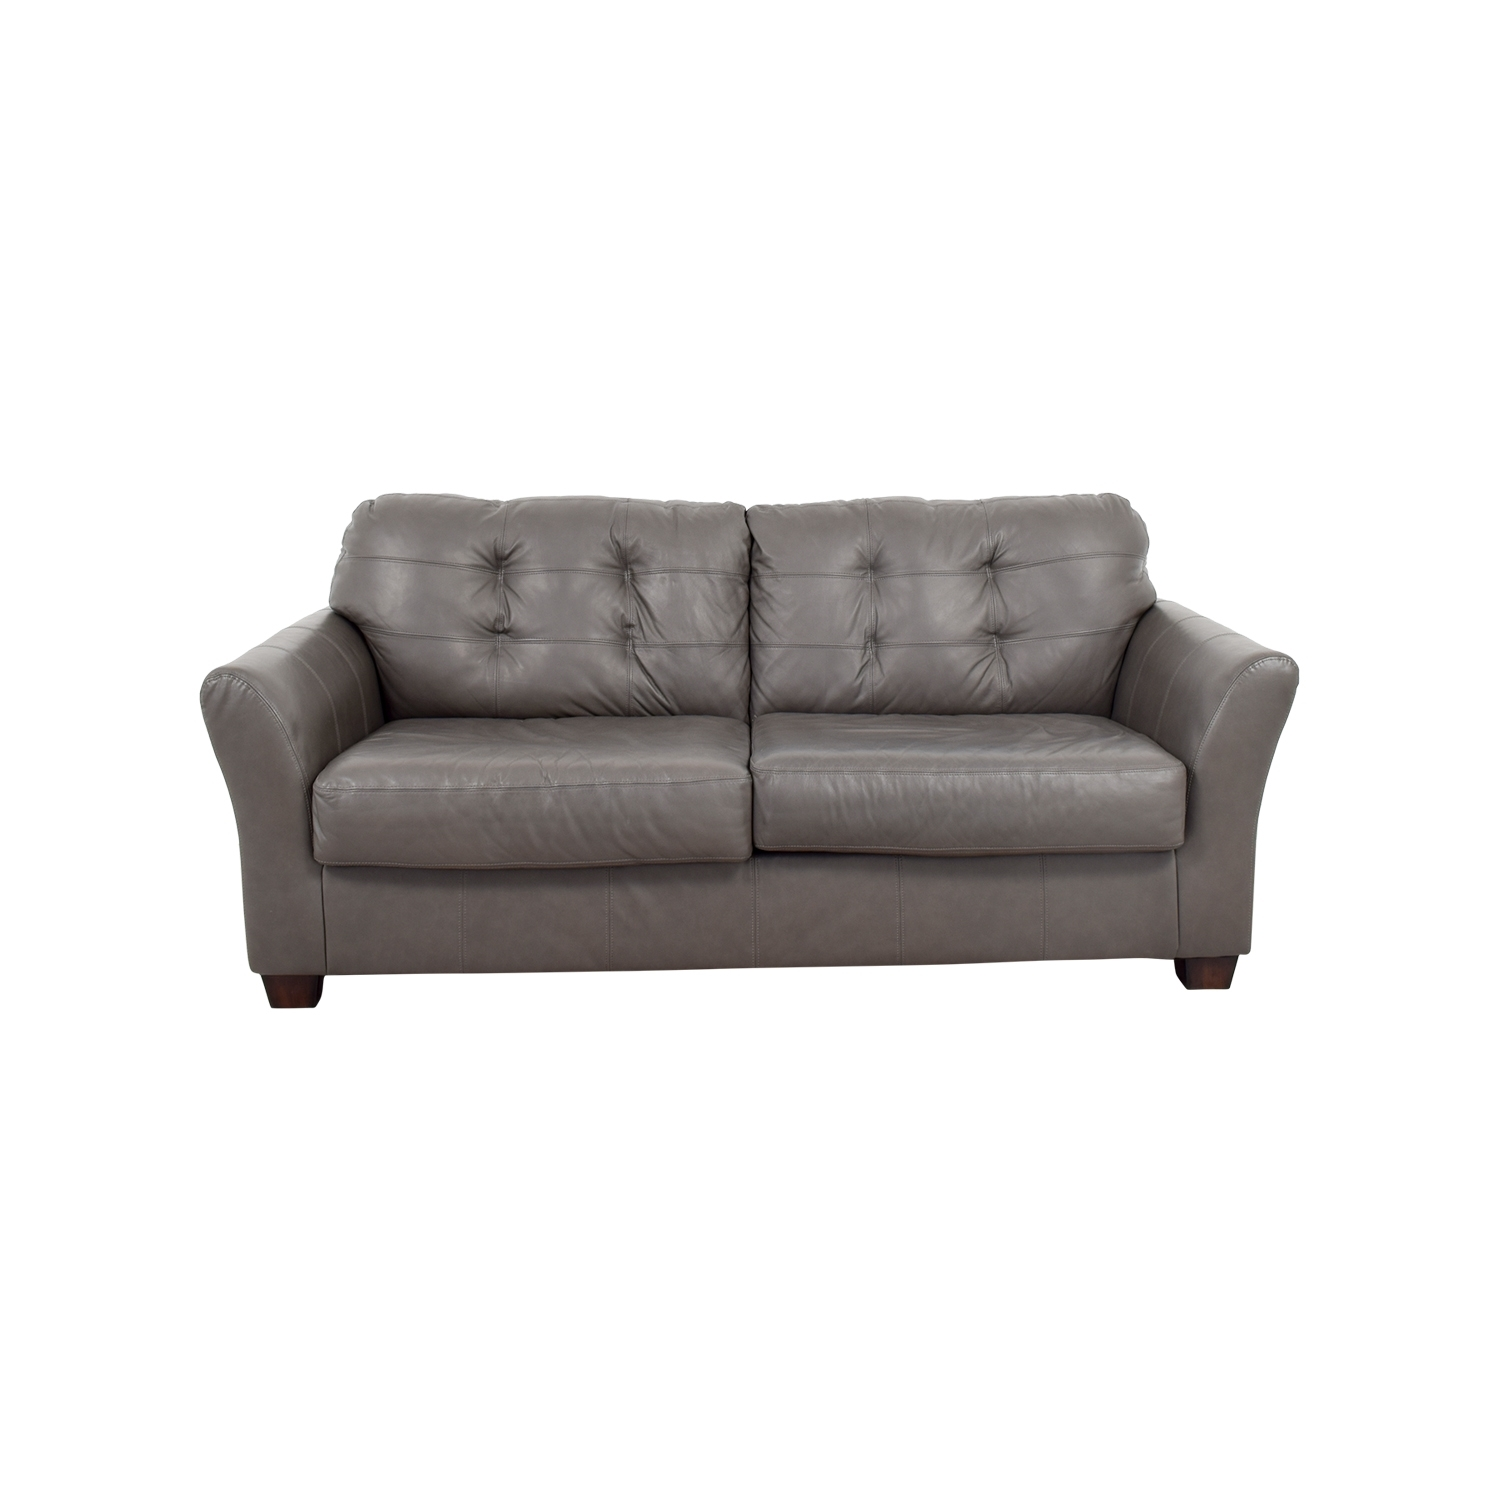 66% Off - Ashley Furniture Ashley Furniture Gray Tufted Sofa / Sofas for Ashley Tufted Sofas